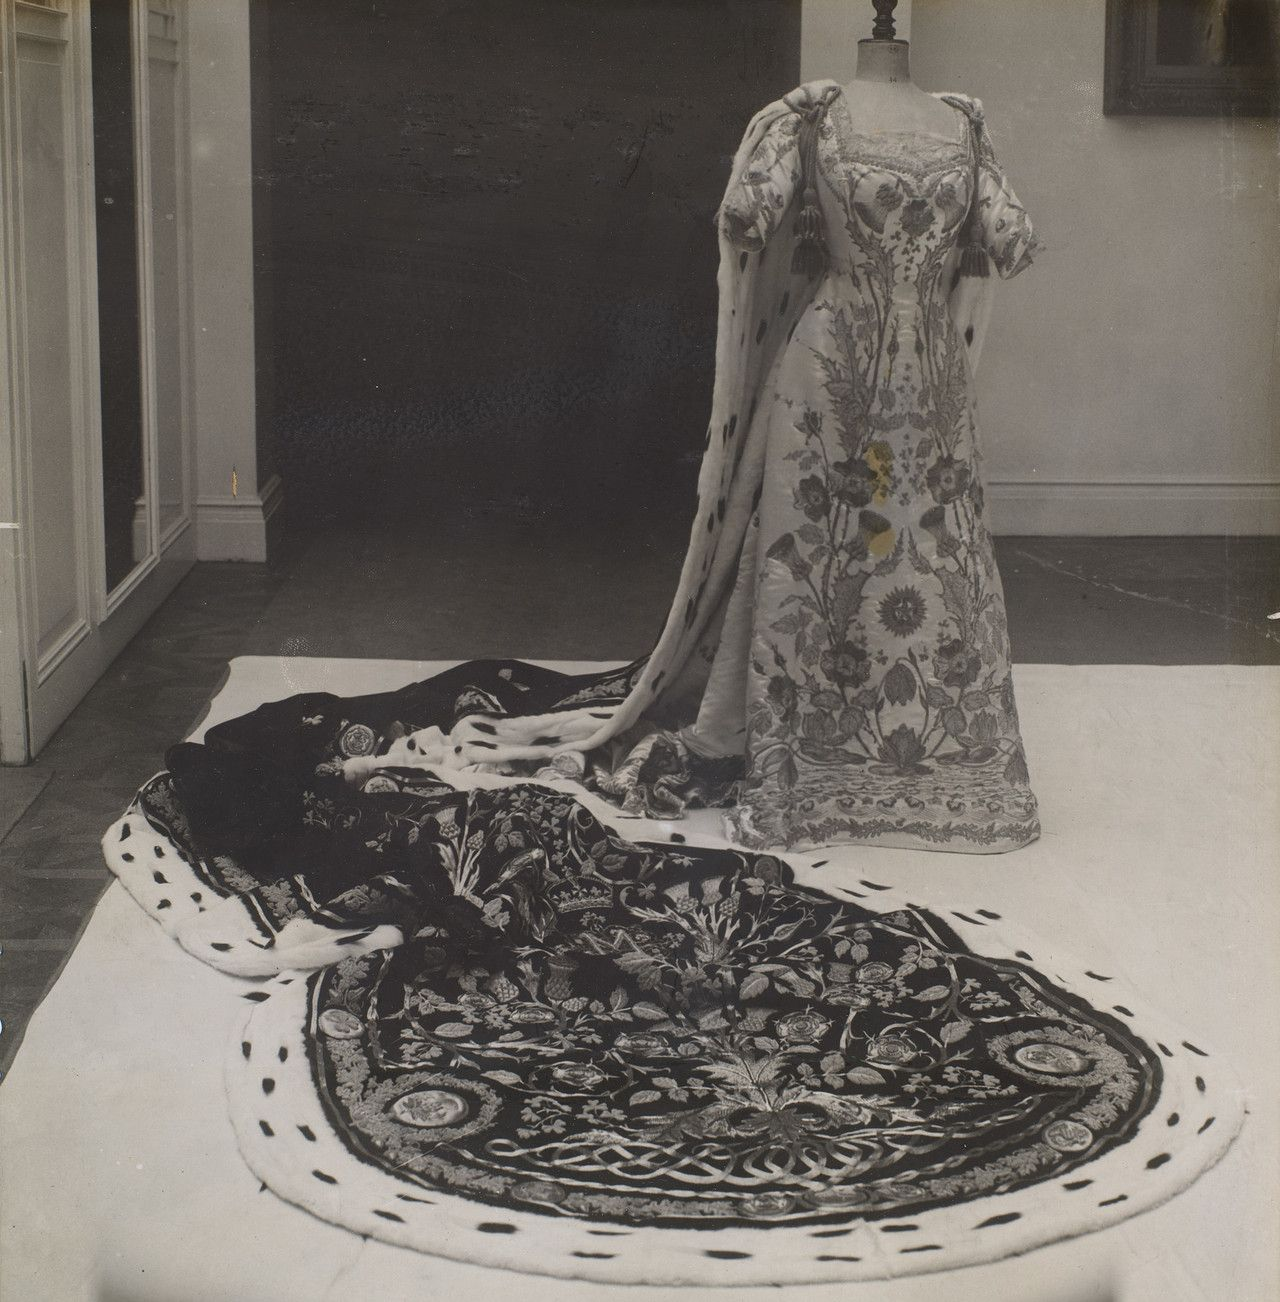 The coronation robes of Queen Mary of the United Kingdom